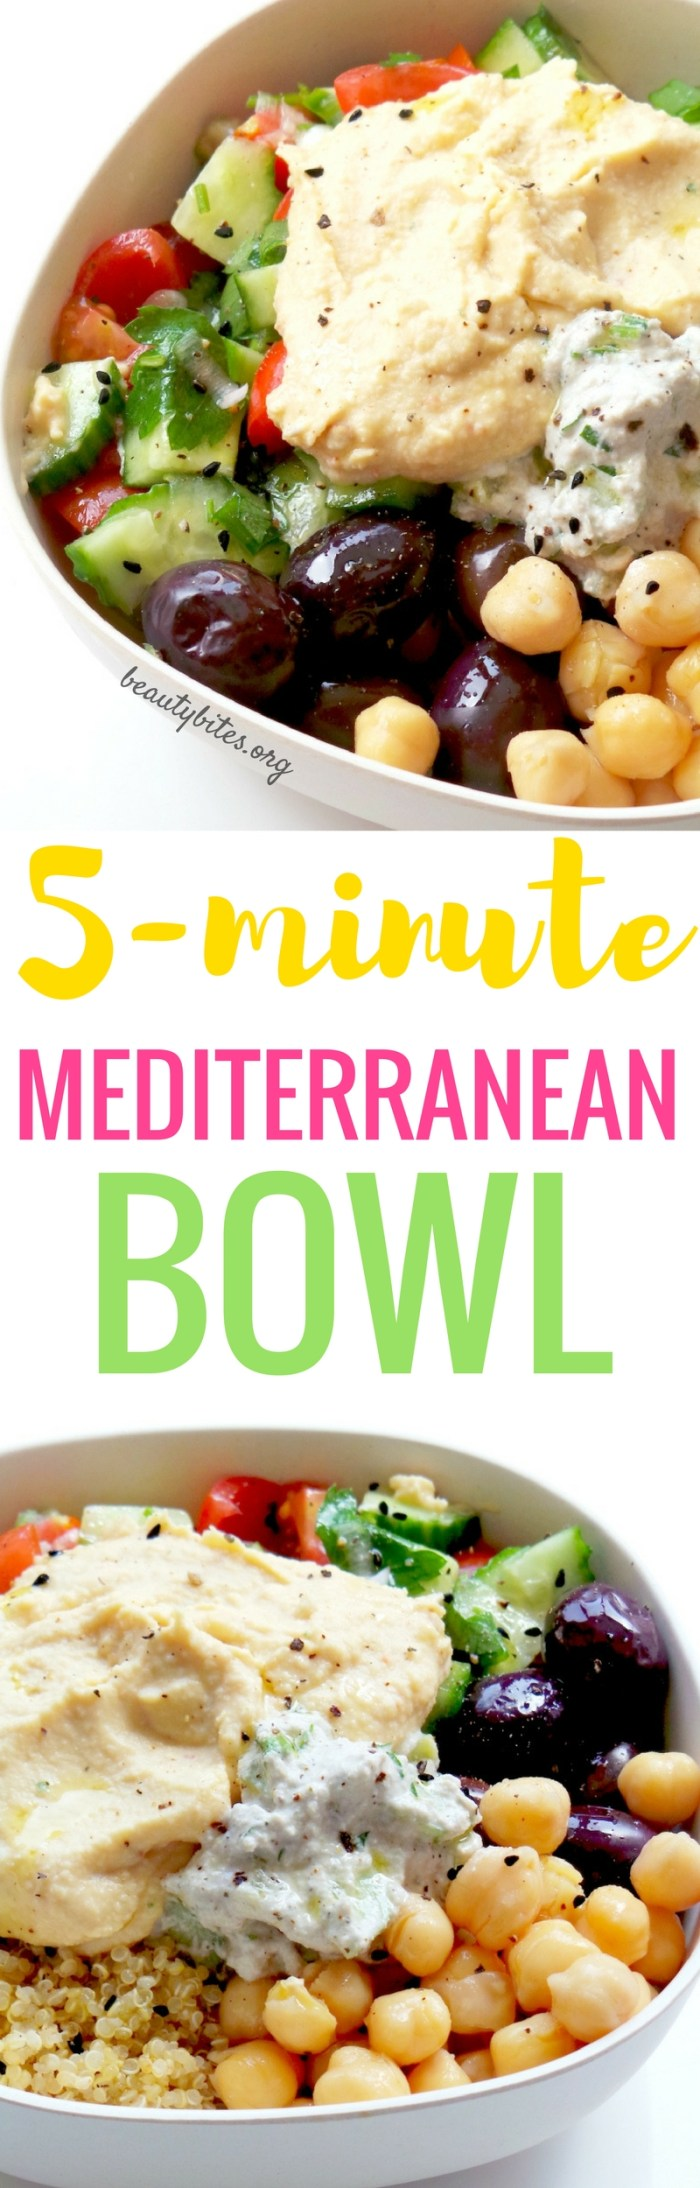 5-Minute Mediterranean Bowl - My Favorite Lunch Recipe! Try this healthy lunch recipe, it's also great to meal prep. You prepare everything and keep all parts in separate containers in the fridge (up to 3 days, except salad - but it takes only 2 minutes). Then arranging this beautiful & easy healthy bowl with quinoa & hummus takes around 5-minutes! It's vegan & gluten-free!Try it! www.beautybites.org/5-minute-mediterranean-bowl | healthy meal prep recipe | healthy salad recipe